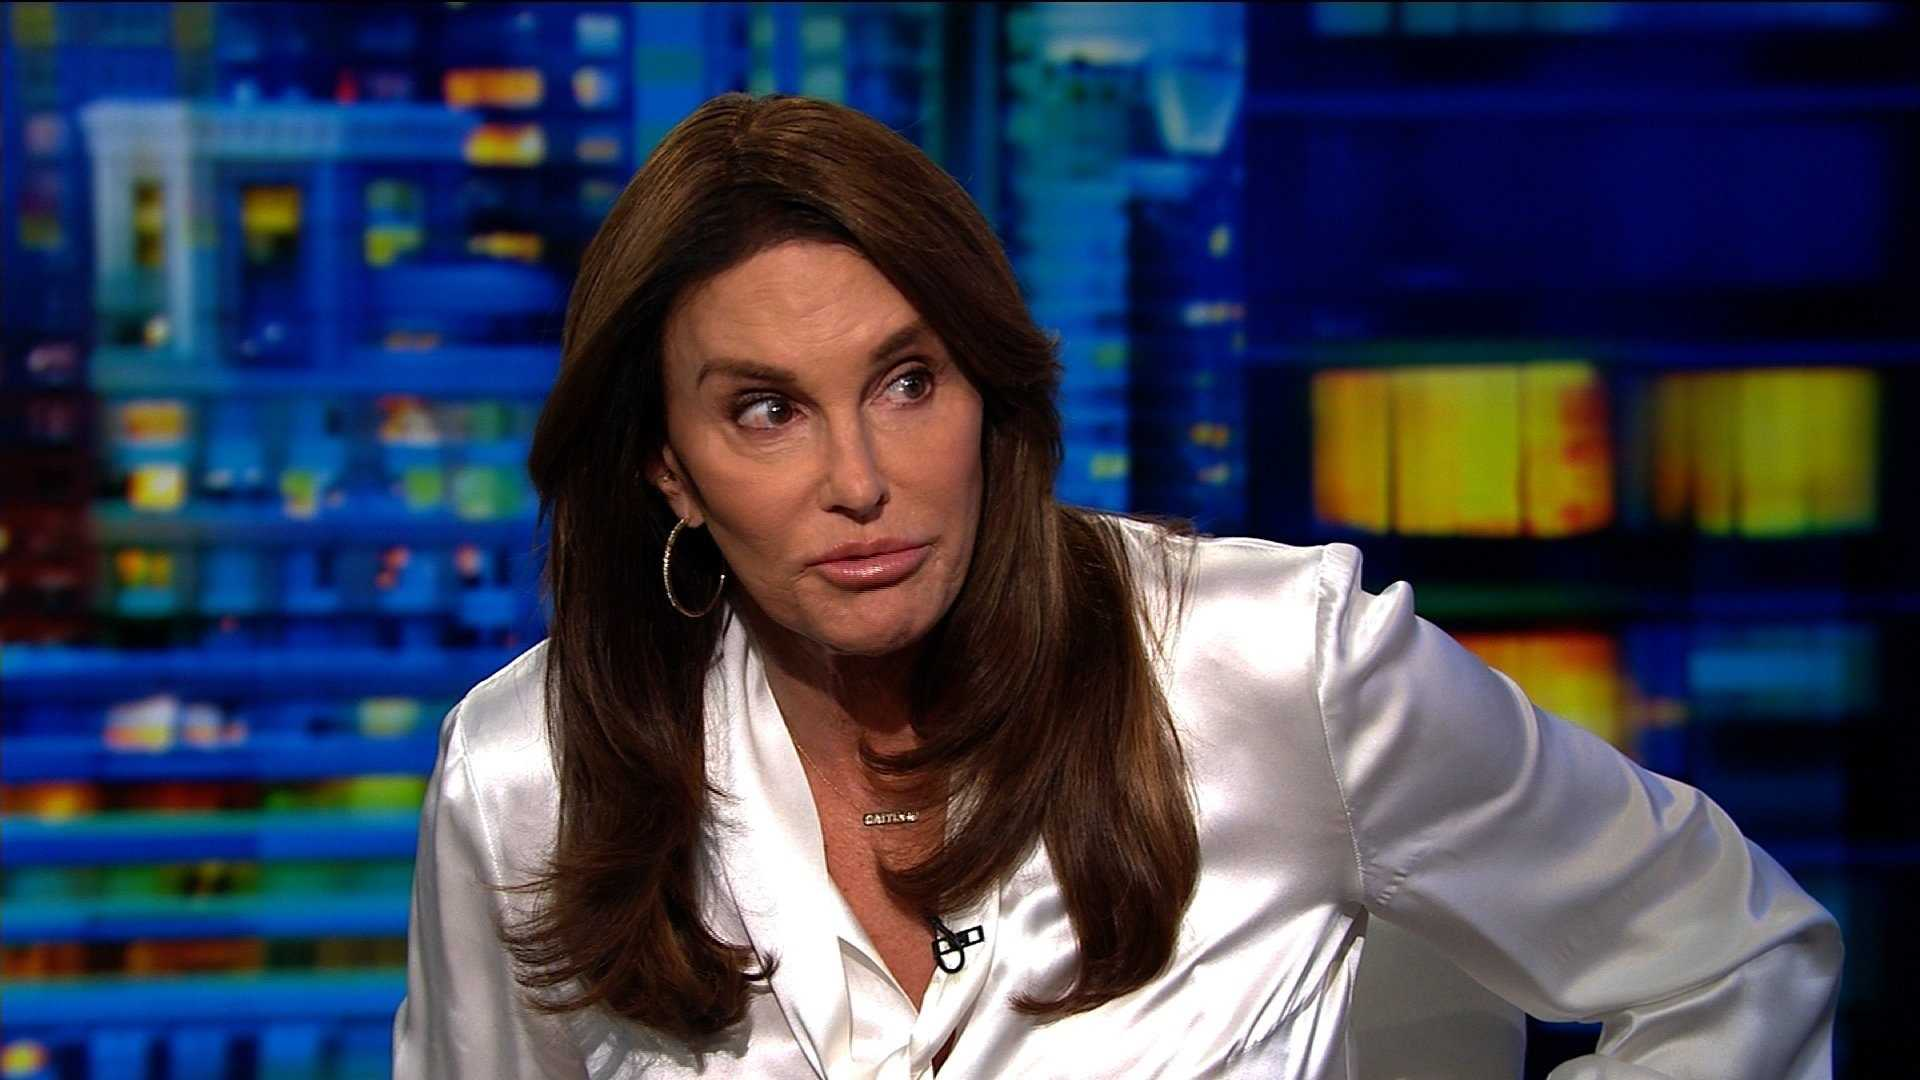 Why Caitlyn Jenner Voted For Trump Despite His LGBT 'Mistakes'